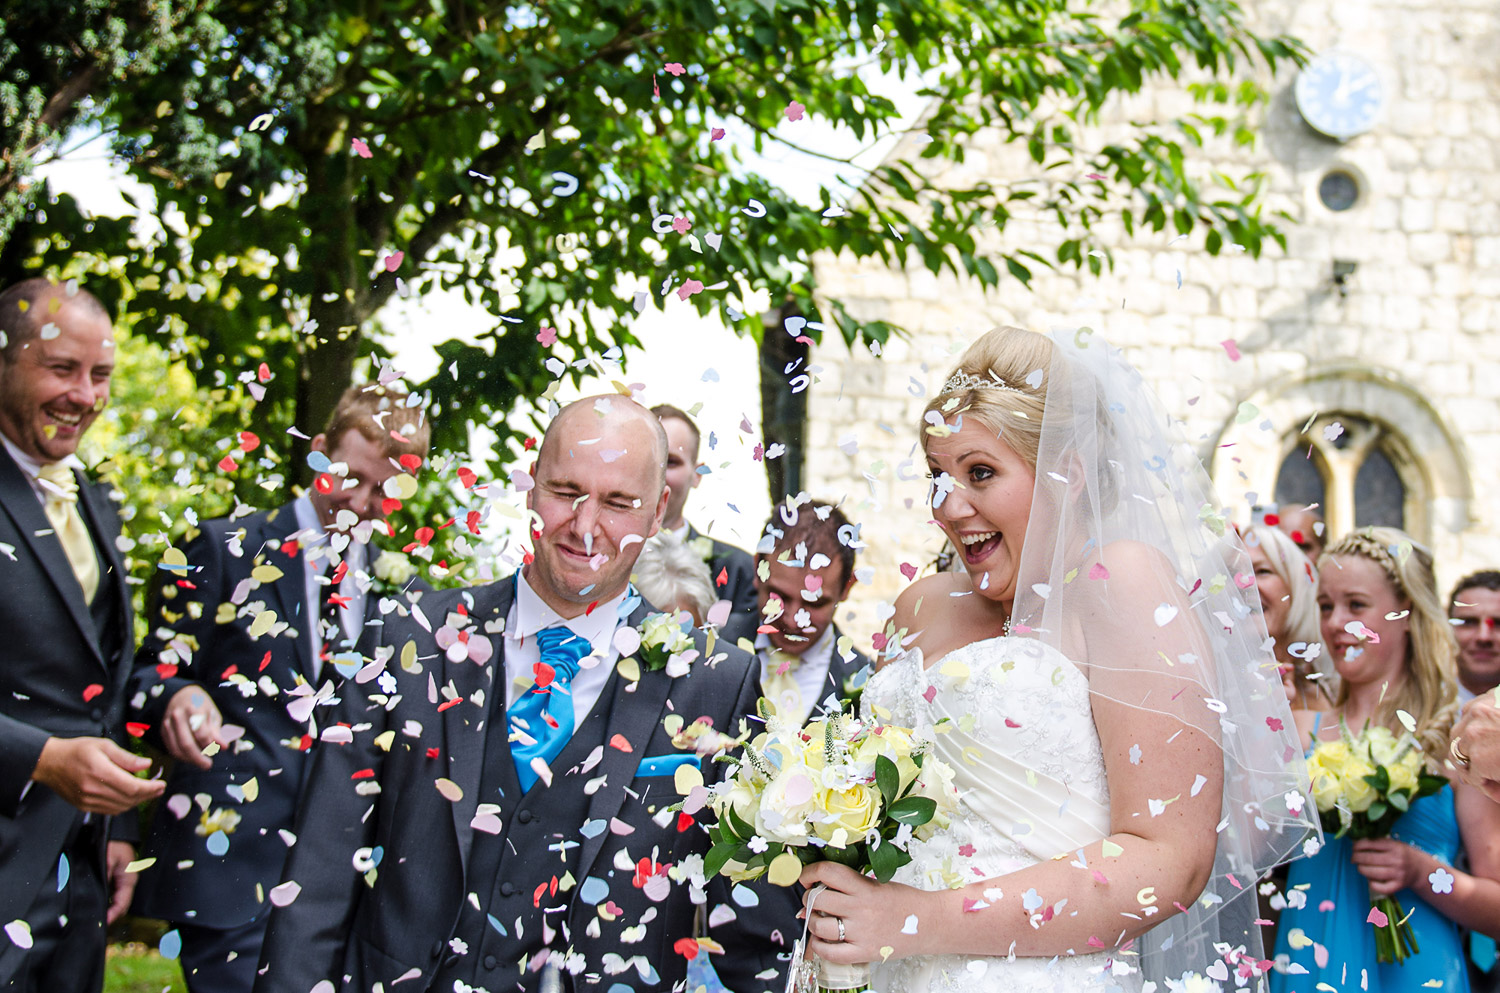 Copy of wedding confetti photo in harrogate